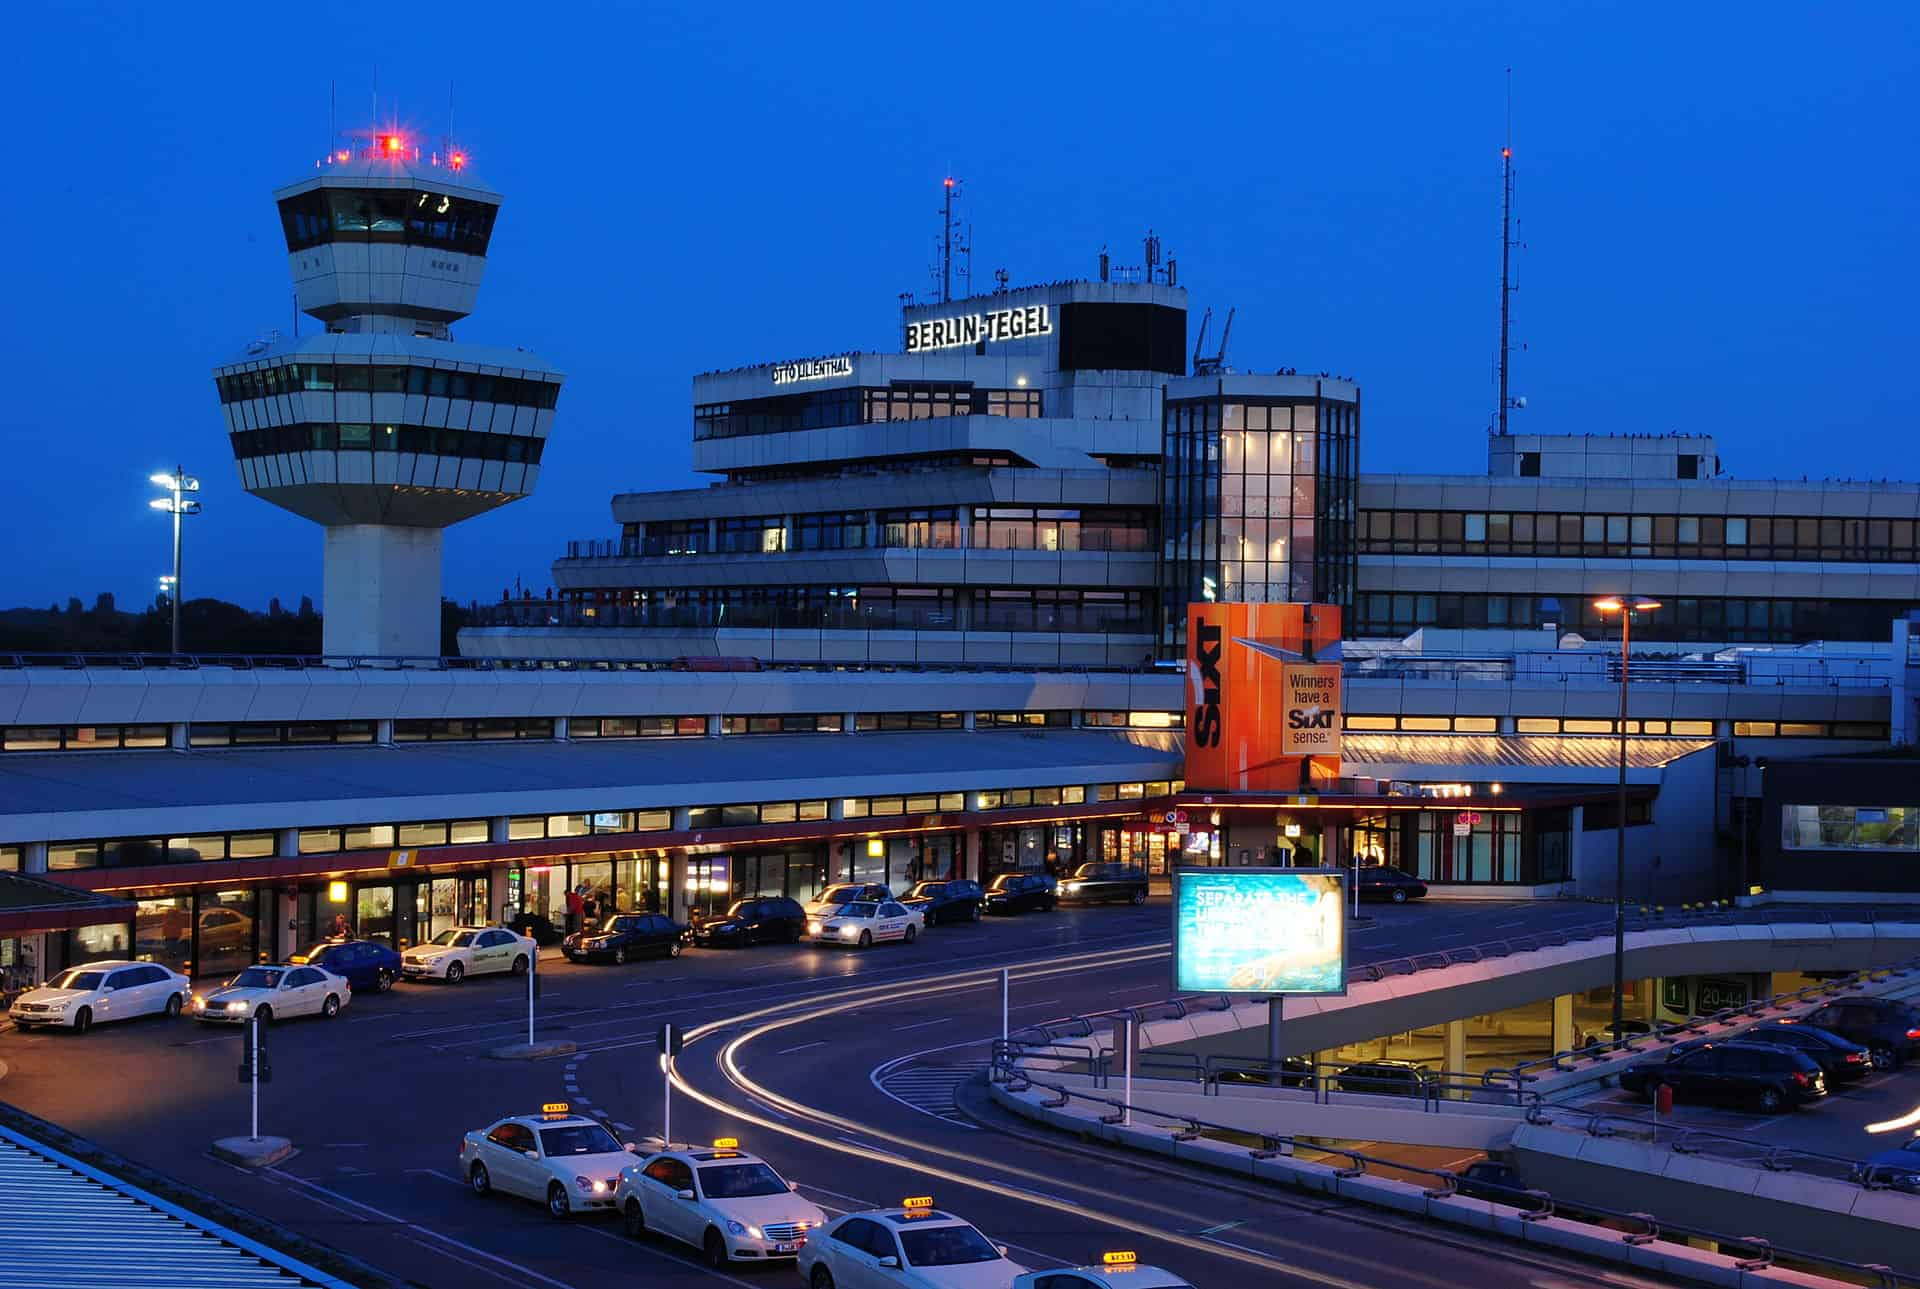 Berlin Tegel Airport Duty Free